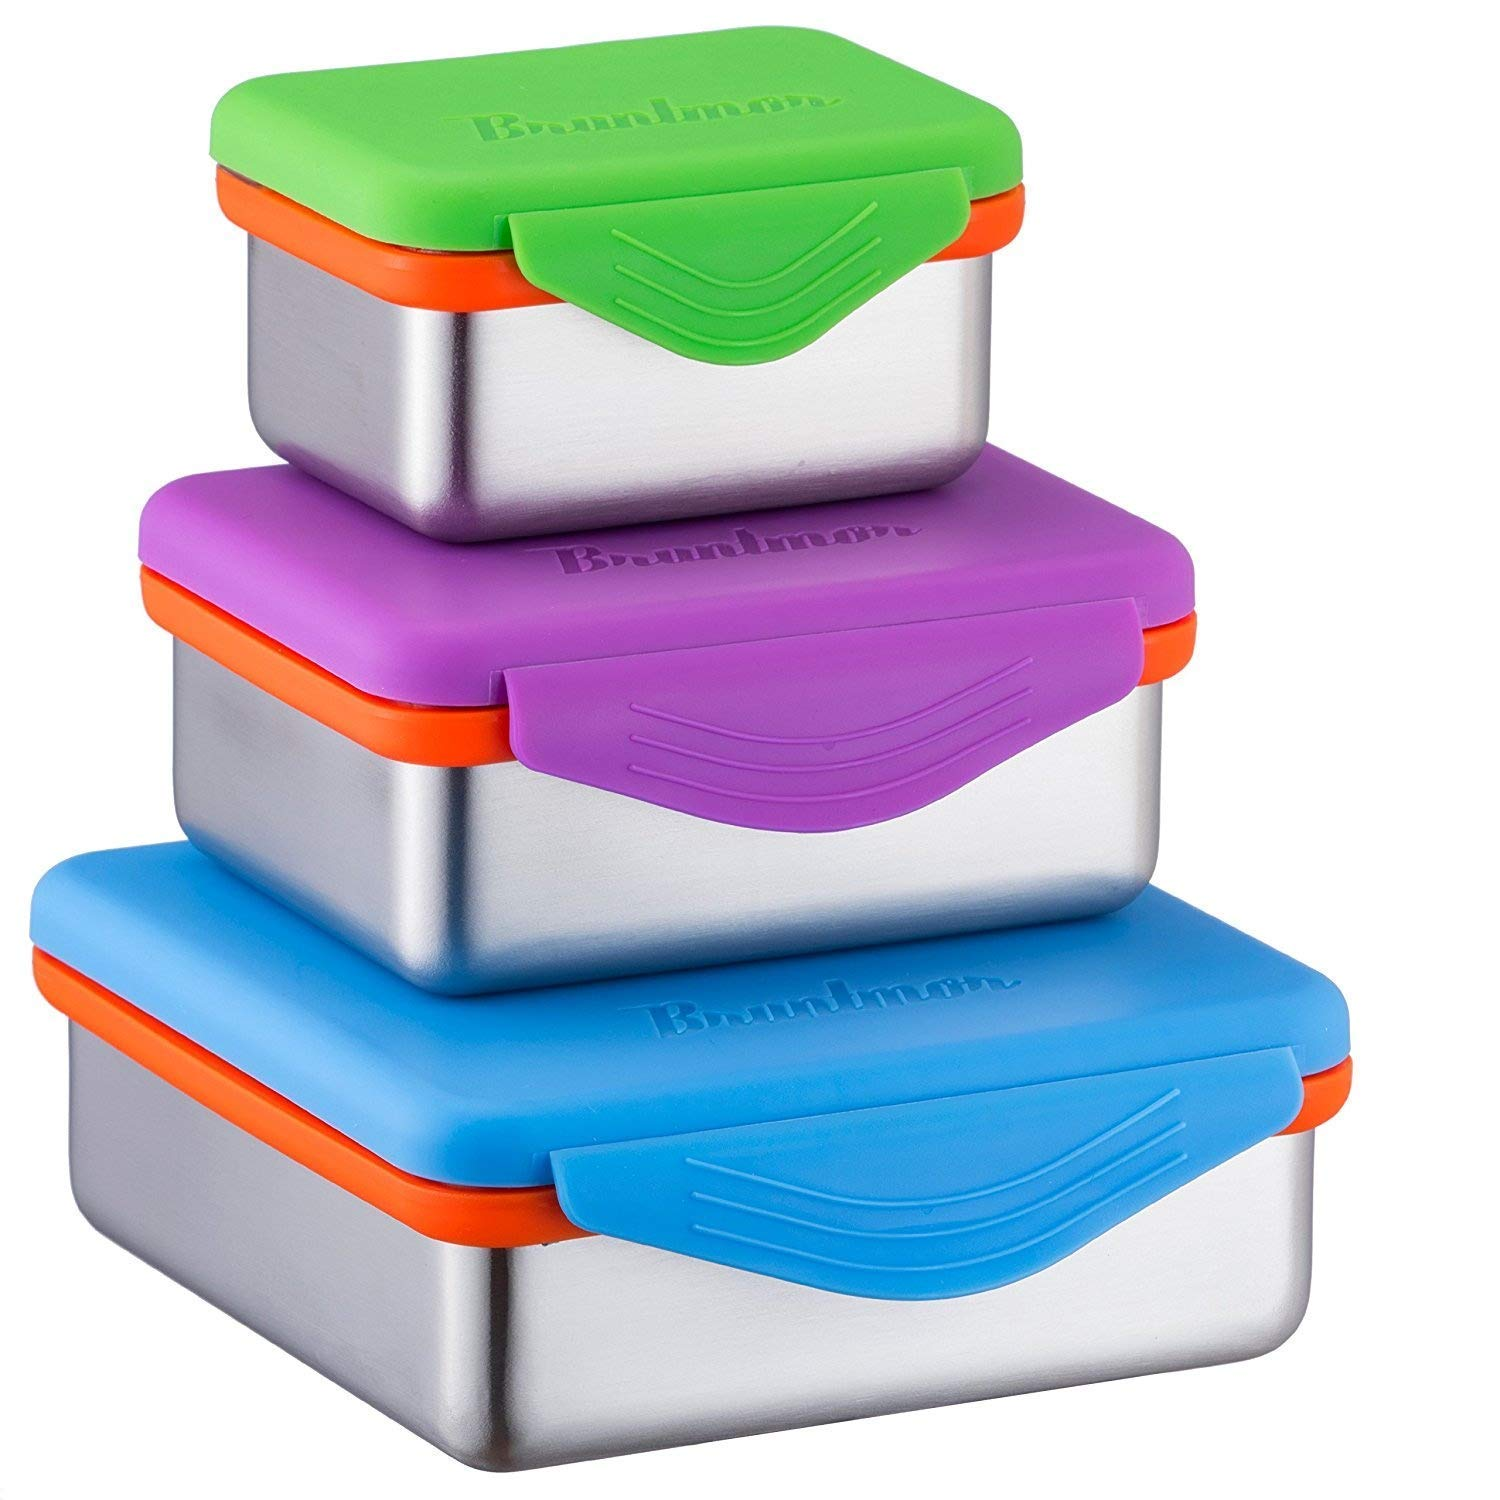 Stainless Steel Food Containers with Snapping Seal Leak-proof Lids